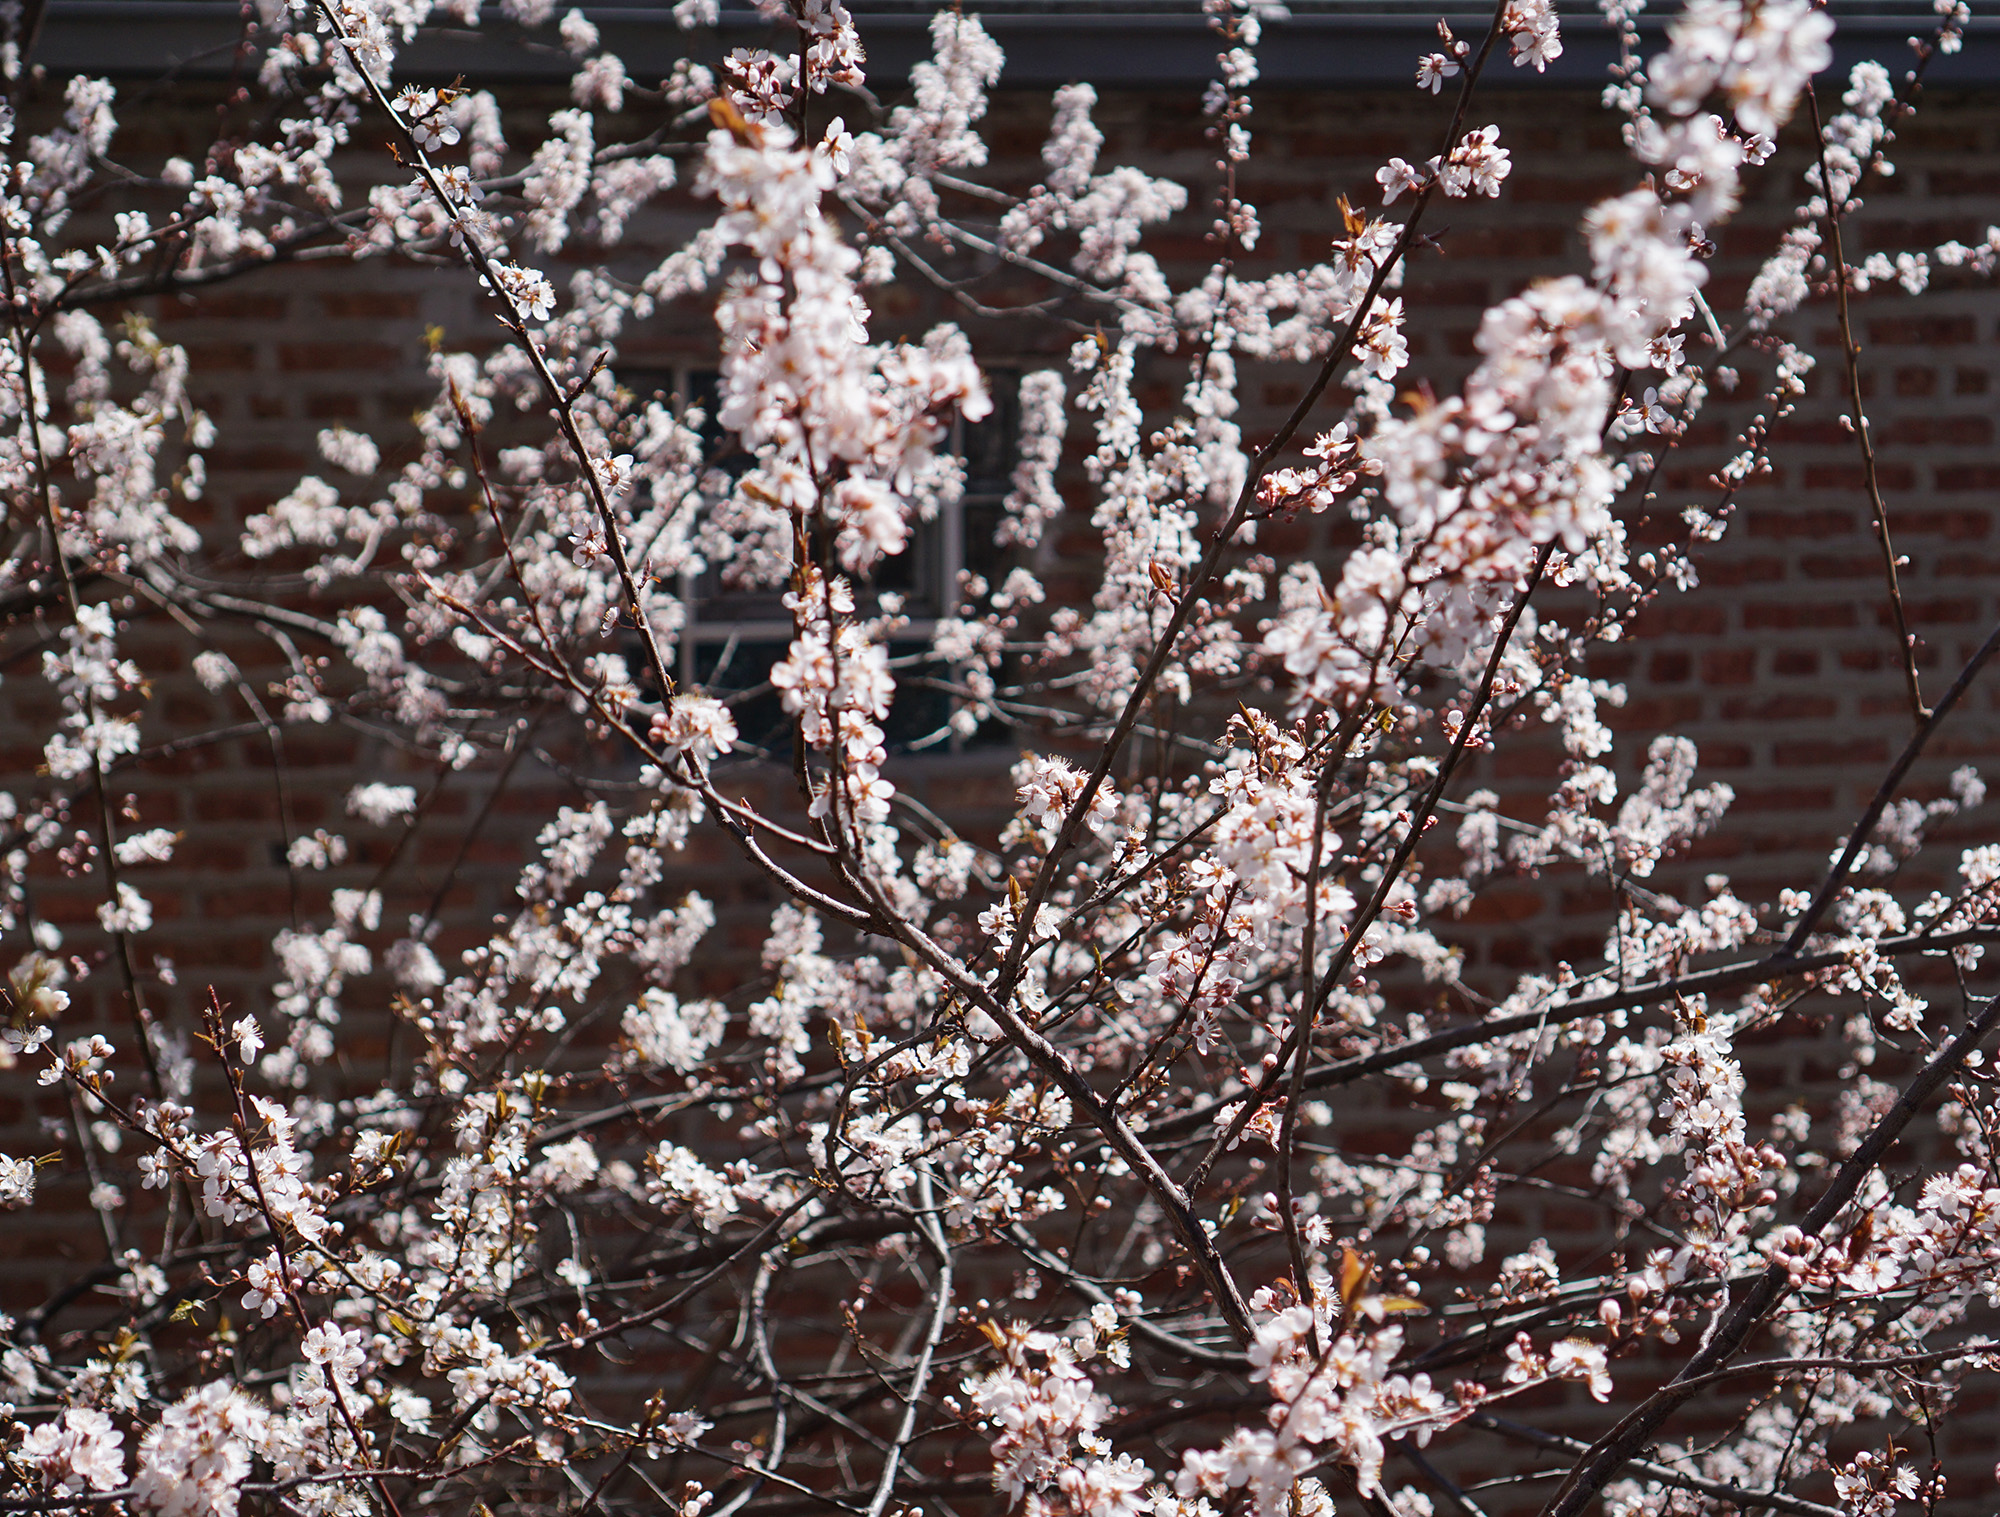 Purpleleaf Plum tree (Prunus cerasifera) in full flower, Chicago IL / Darker than Green